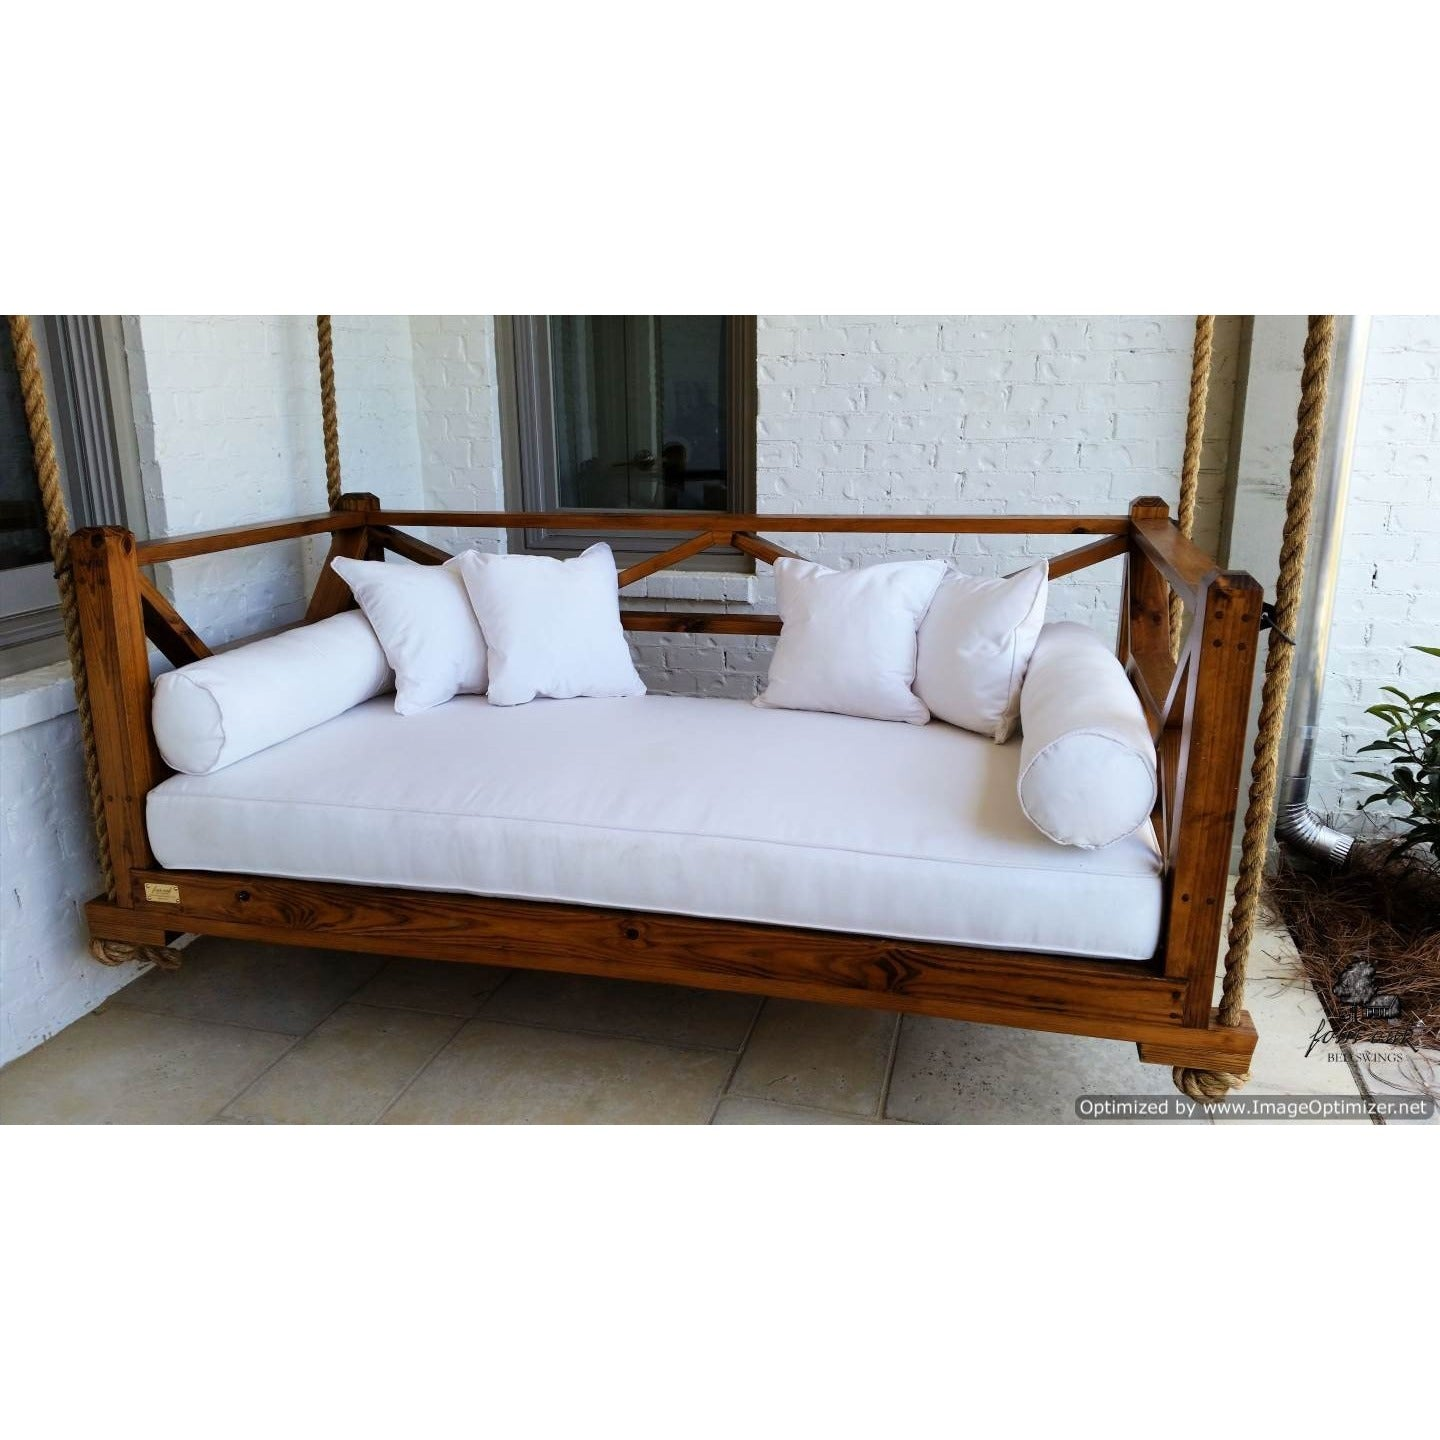 Seaside Bed Swing Porch Patio Swing Bed Porch Hanging Swing